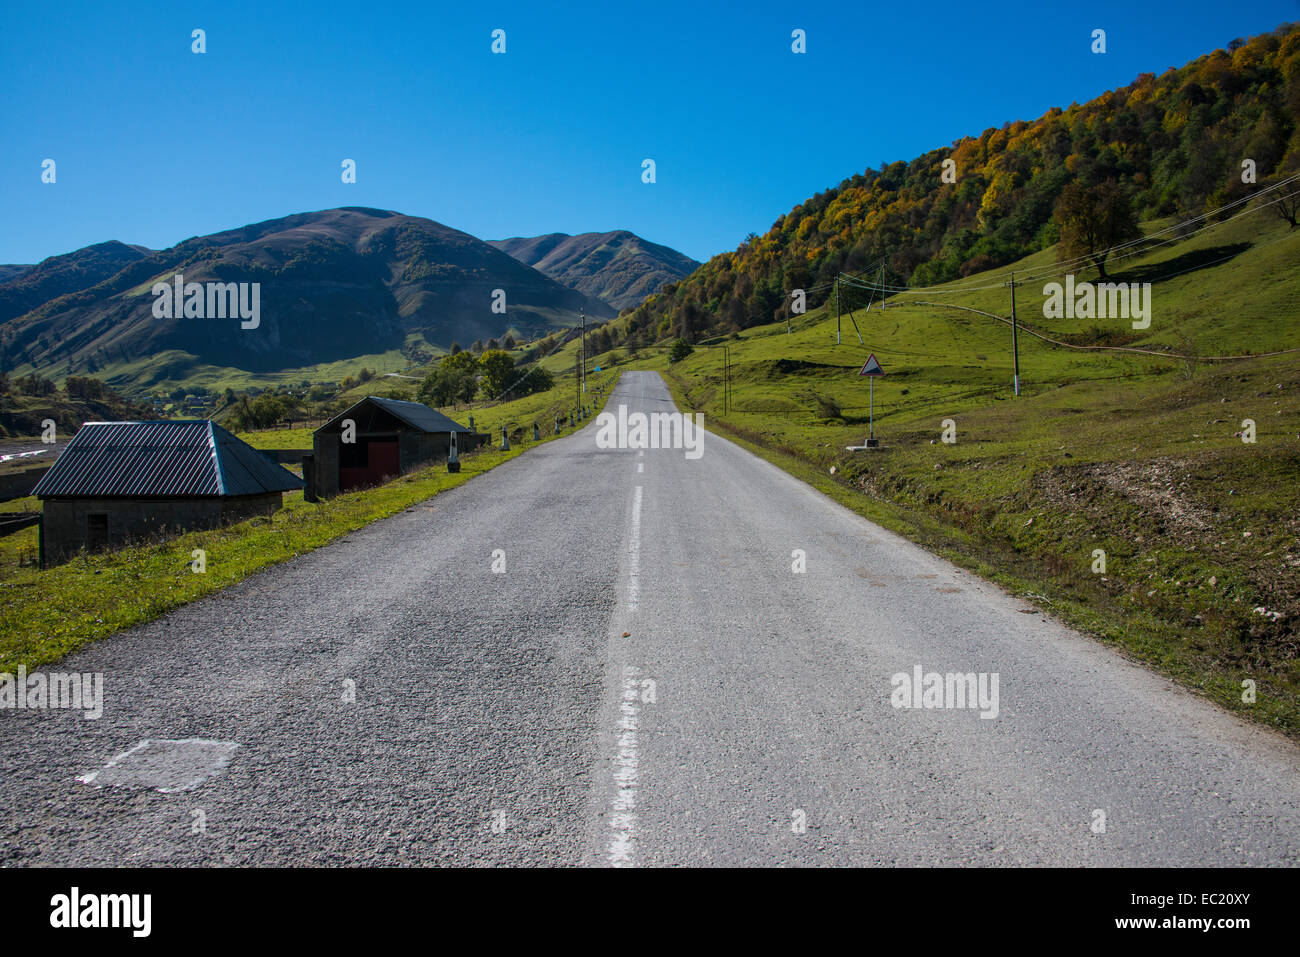 Road in the Chechen mountains, Chechnya, Caucasus, Russia - Stock Image